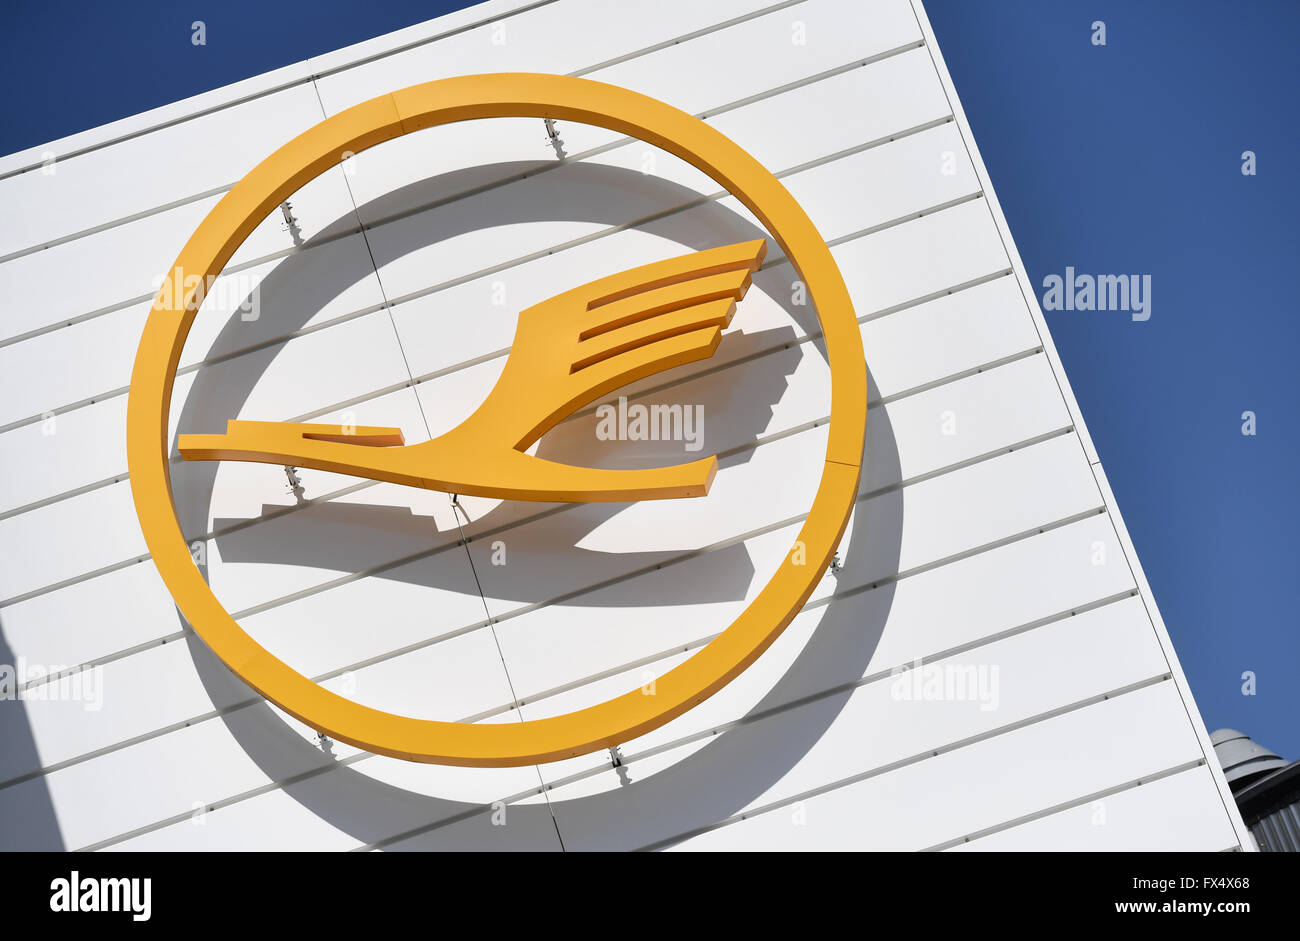 Munich, Germany. 04th Apr, 2016. The logo of German air carrier Lufthansa pictured on a building of the airport in Munich, Germany, 04 April 2016. Photo: ANDREAS GEBERT/dpa/Alamy Live News Stock Photo